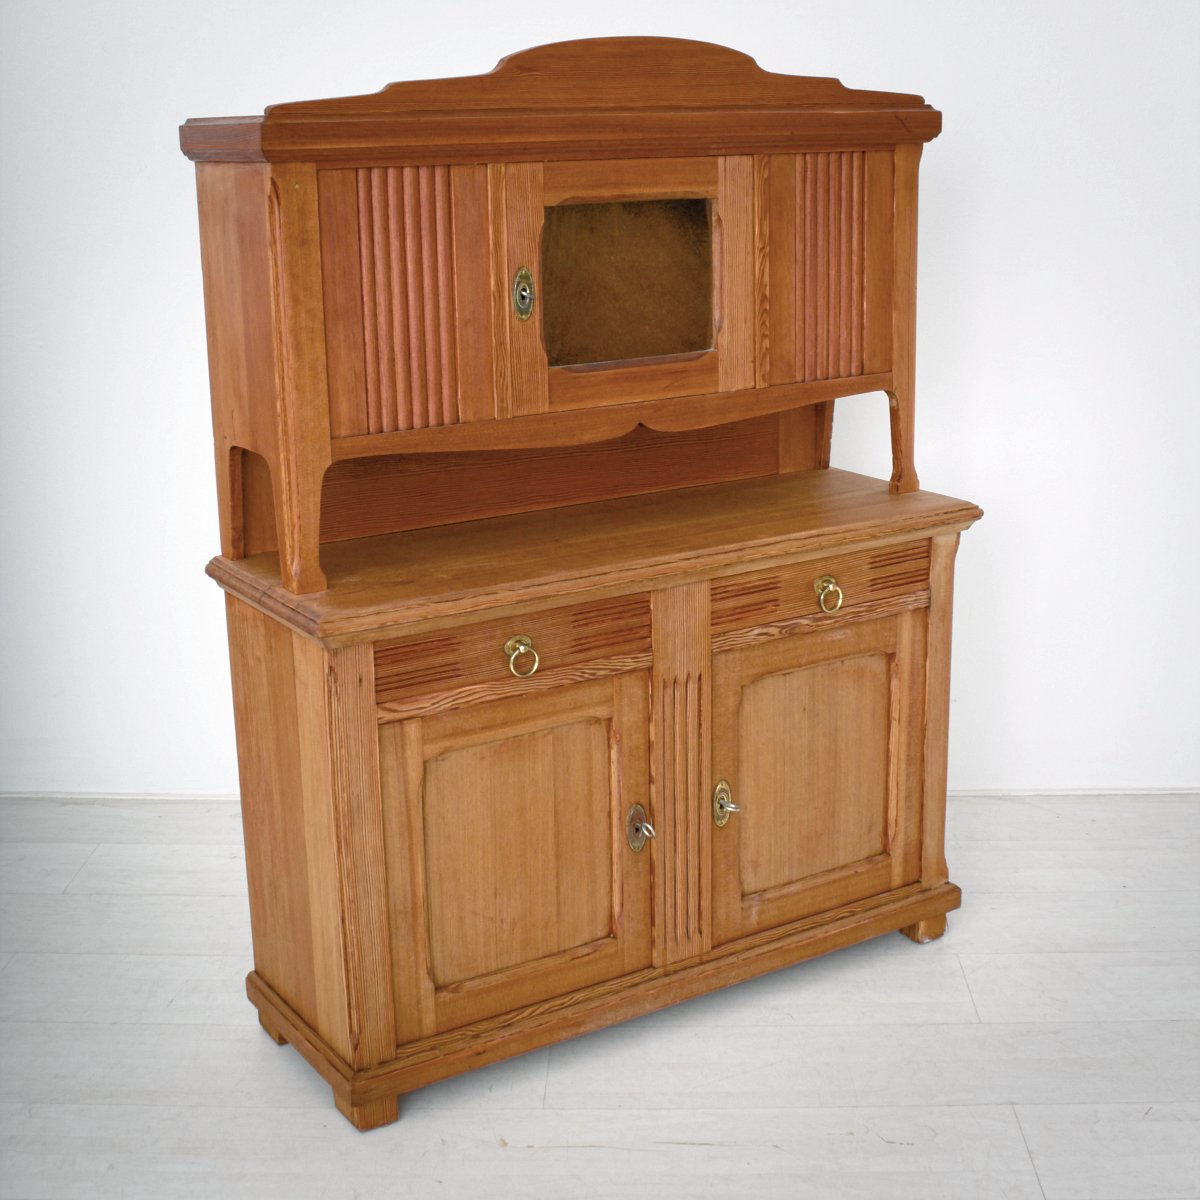 small art nouveau pine kitchen buffet 1920s for sale at pamono. Black Bedroom Furniture Sets. Home Design Ideas